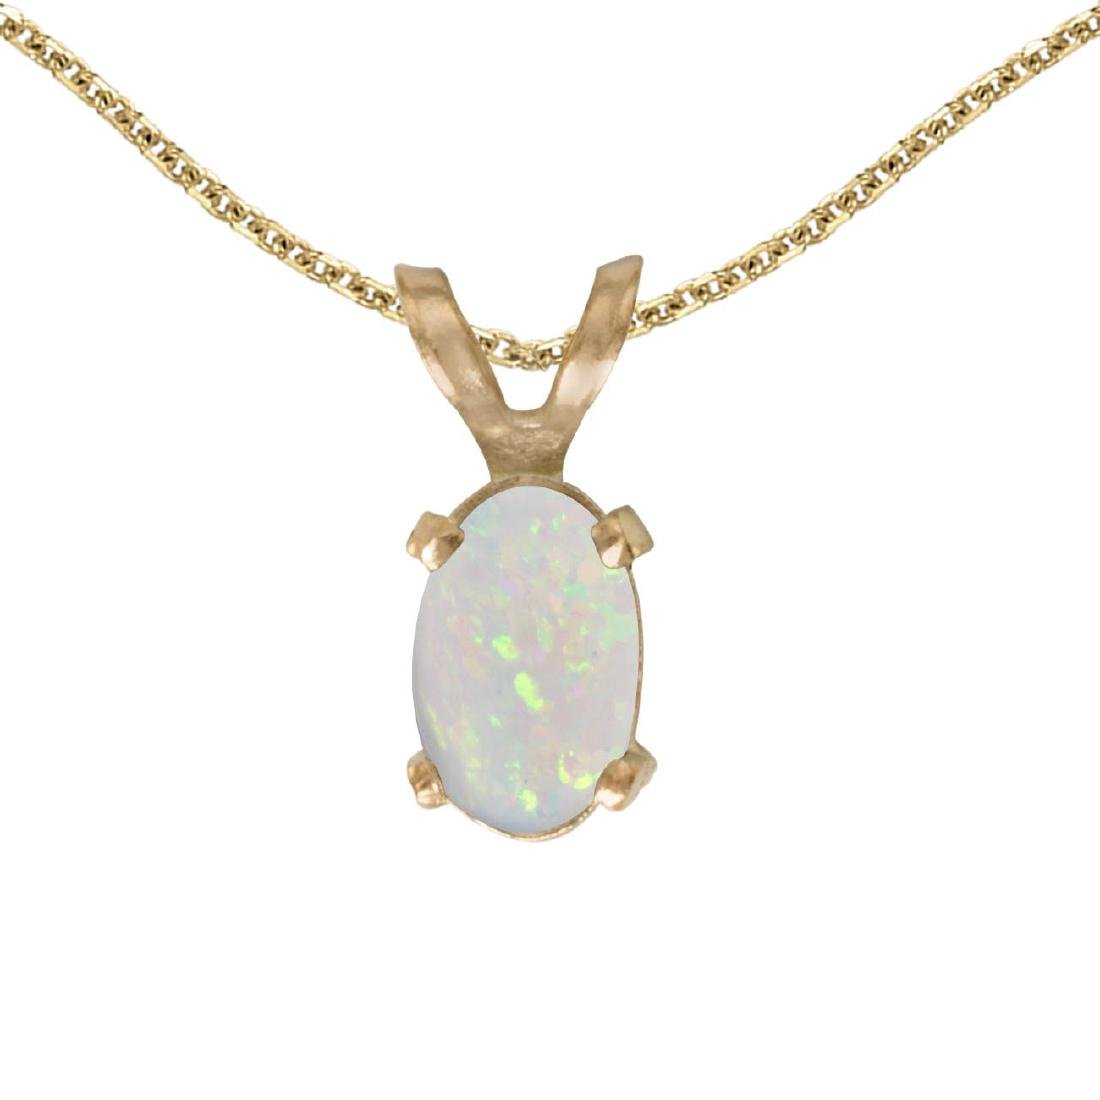 Certified 14k Yellow Gold Oval Opal Pendant 0.19 CTW